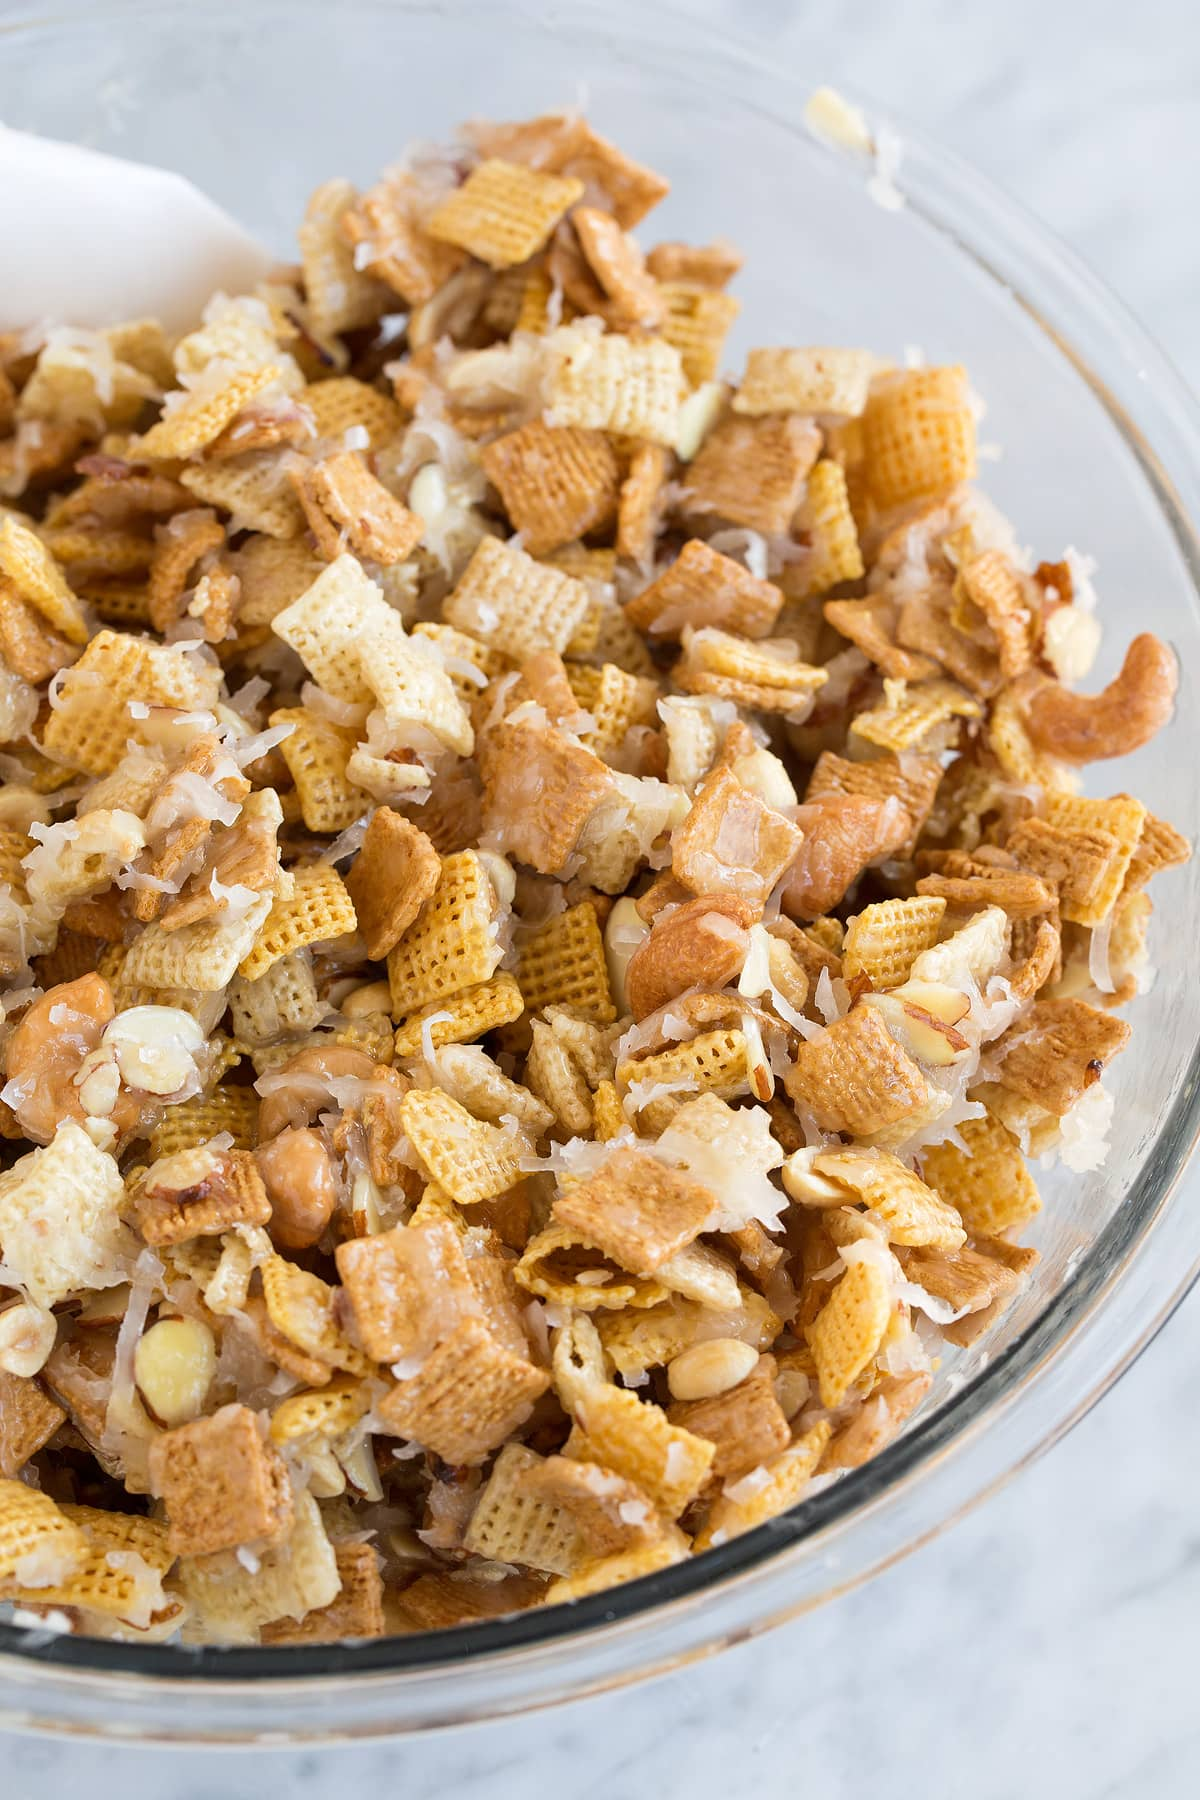 Sweet and sticky chex mix in a glass mixing bowl set over a marble surface. It includes corn and rice chex cereal, golden grahams, nuts, coconut and a butter sugar topping.